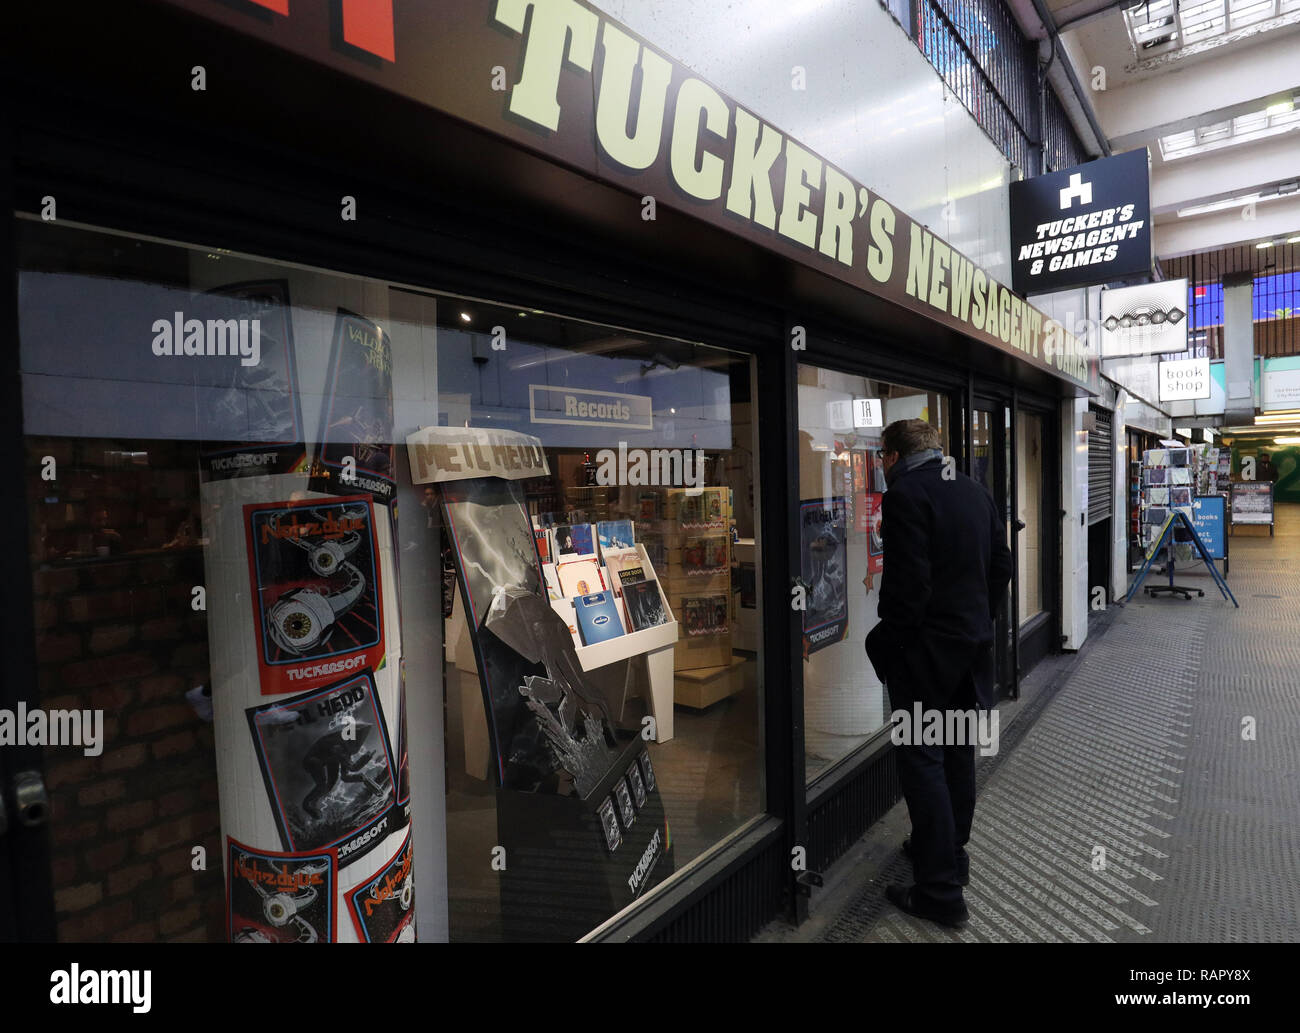 The faux pop up store in Old Street, London, featuring